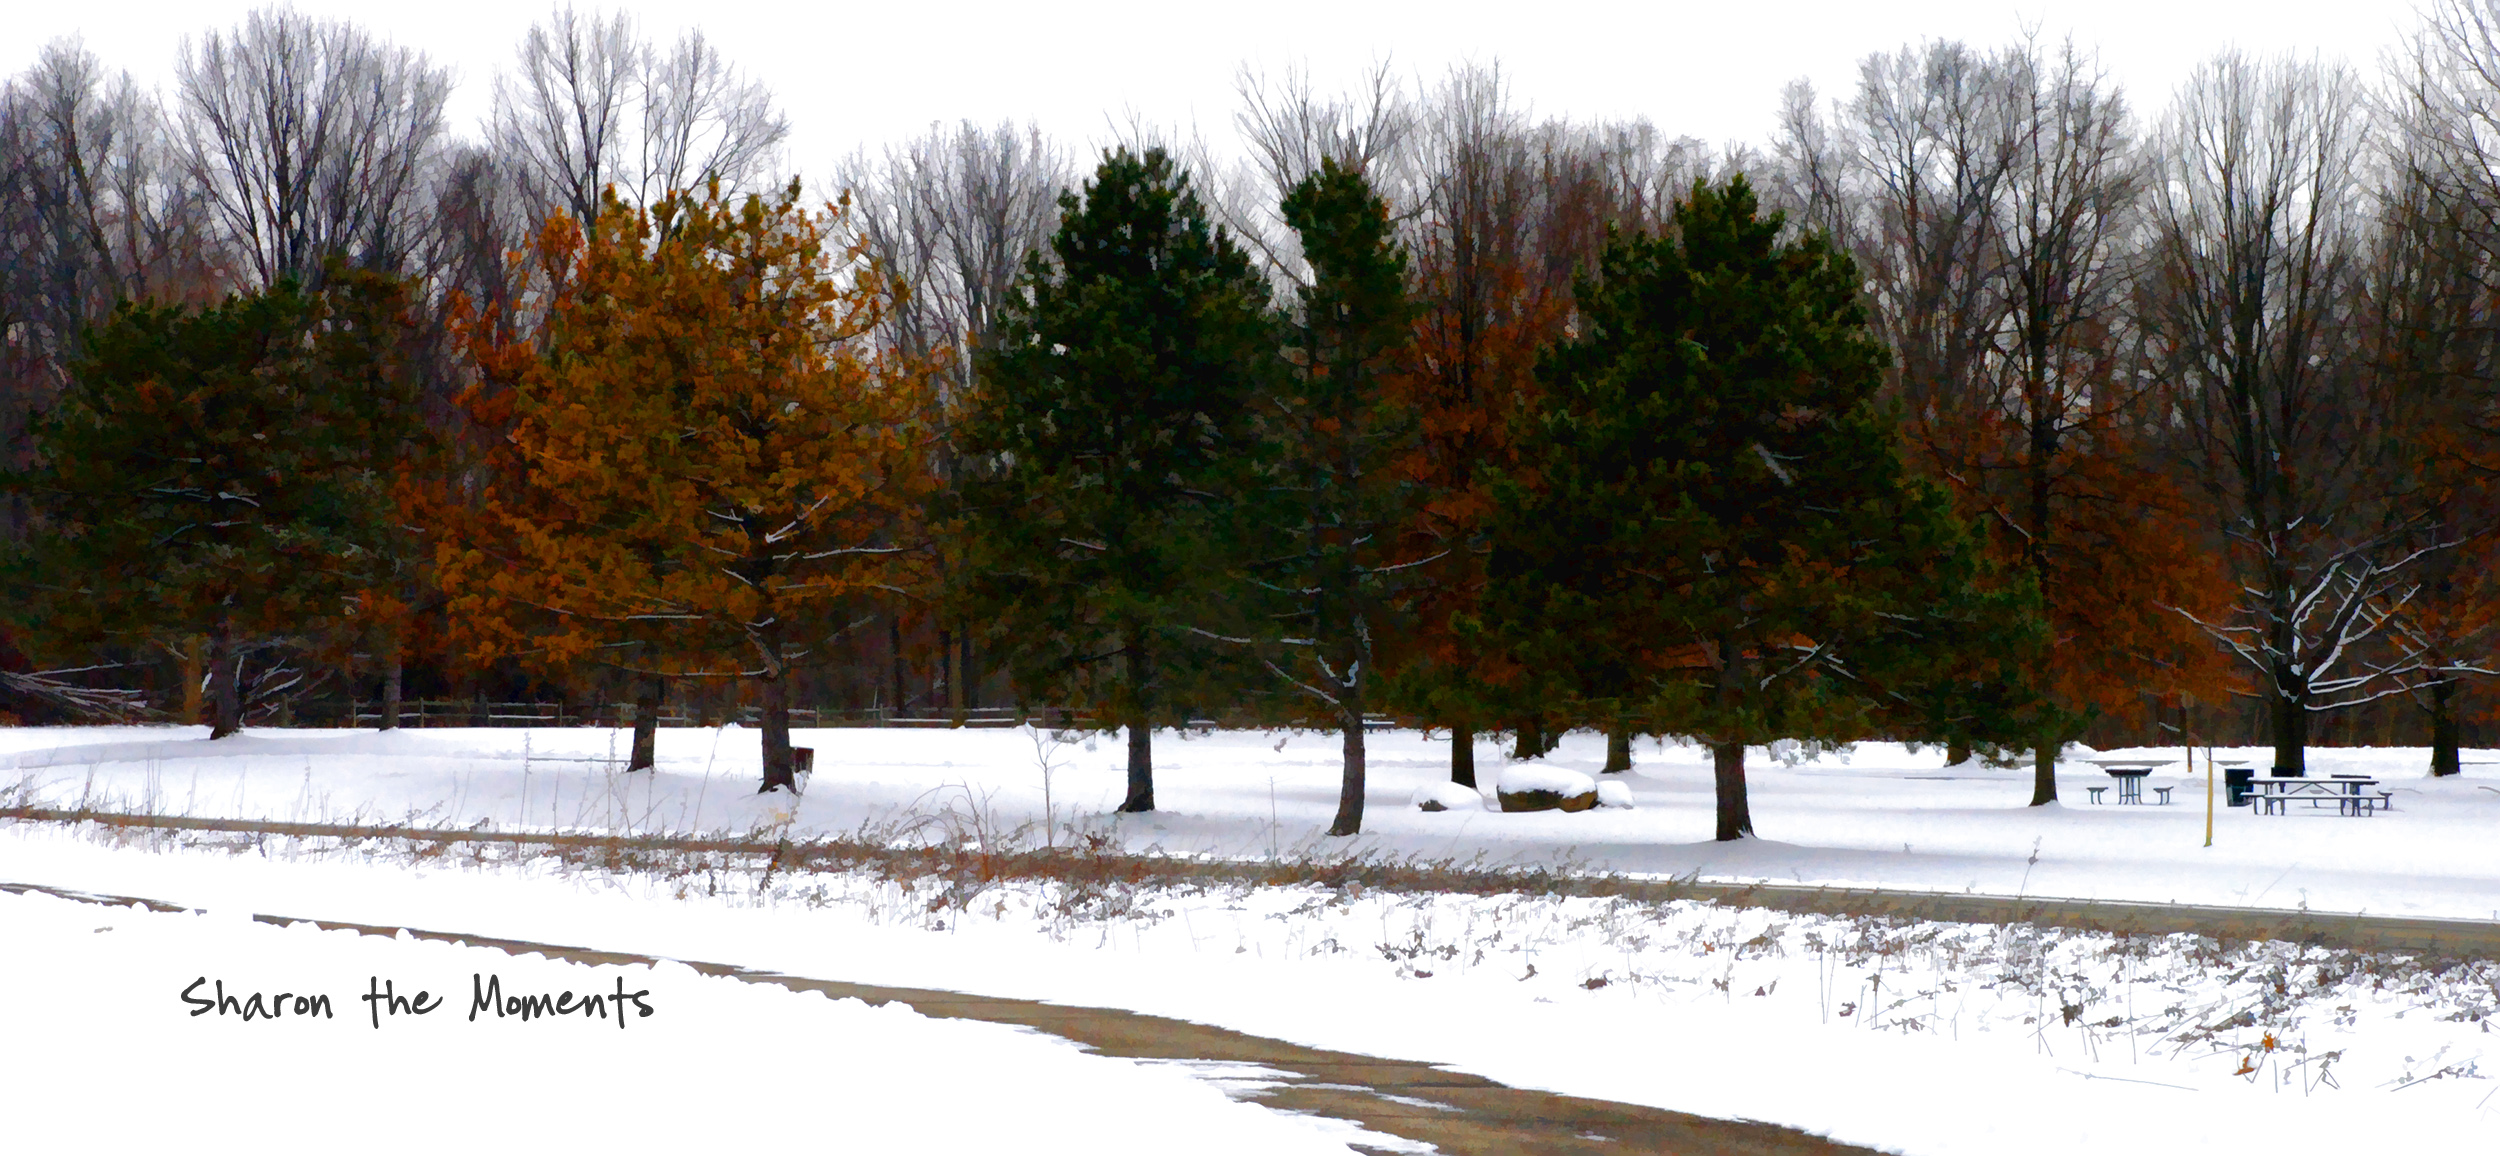 Favorite Photo Friday Sharon Woods Metro Park Snowy Winter Day|Sharon the Moments blog